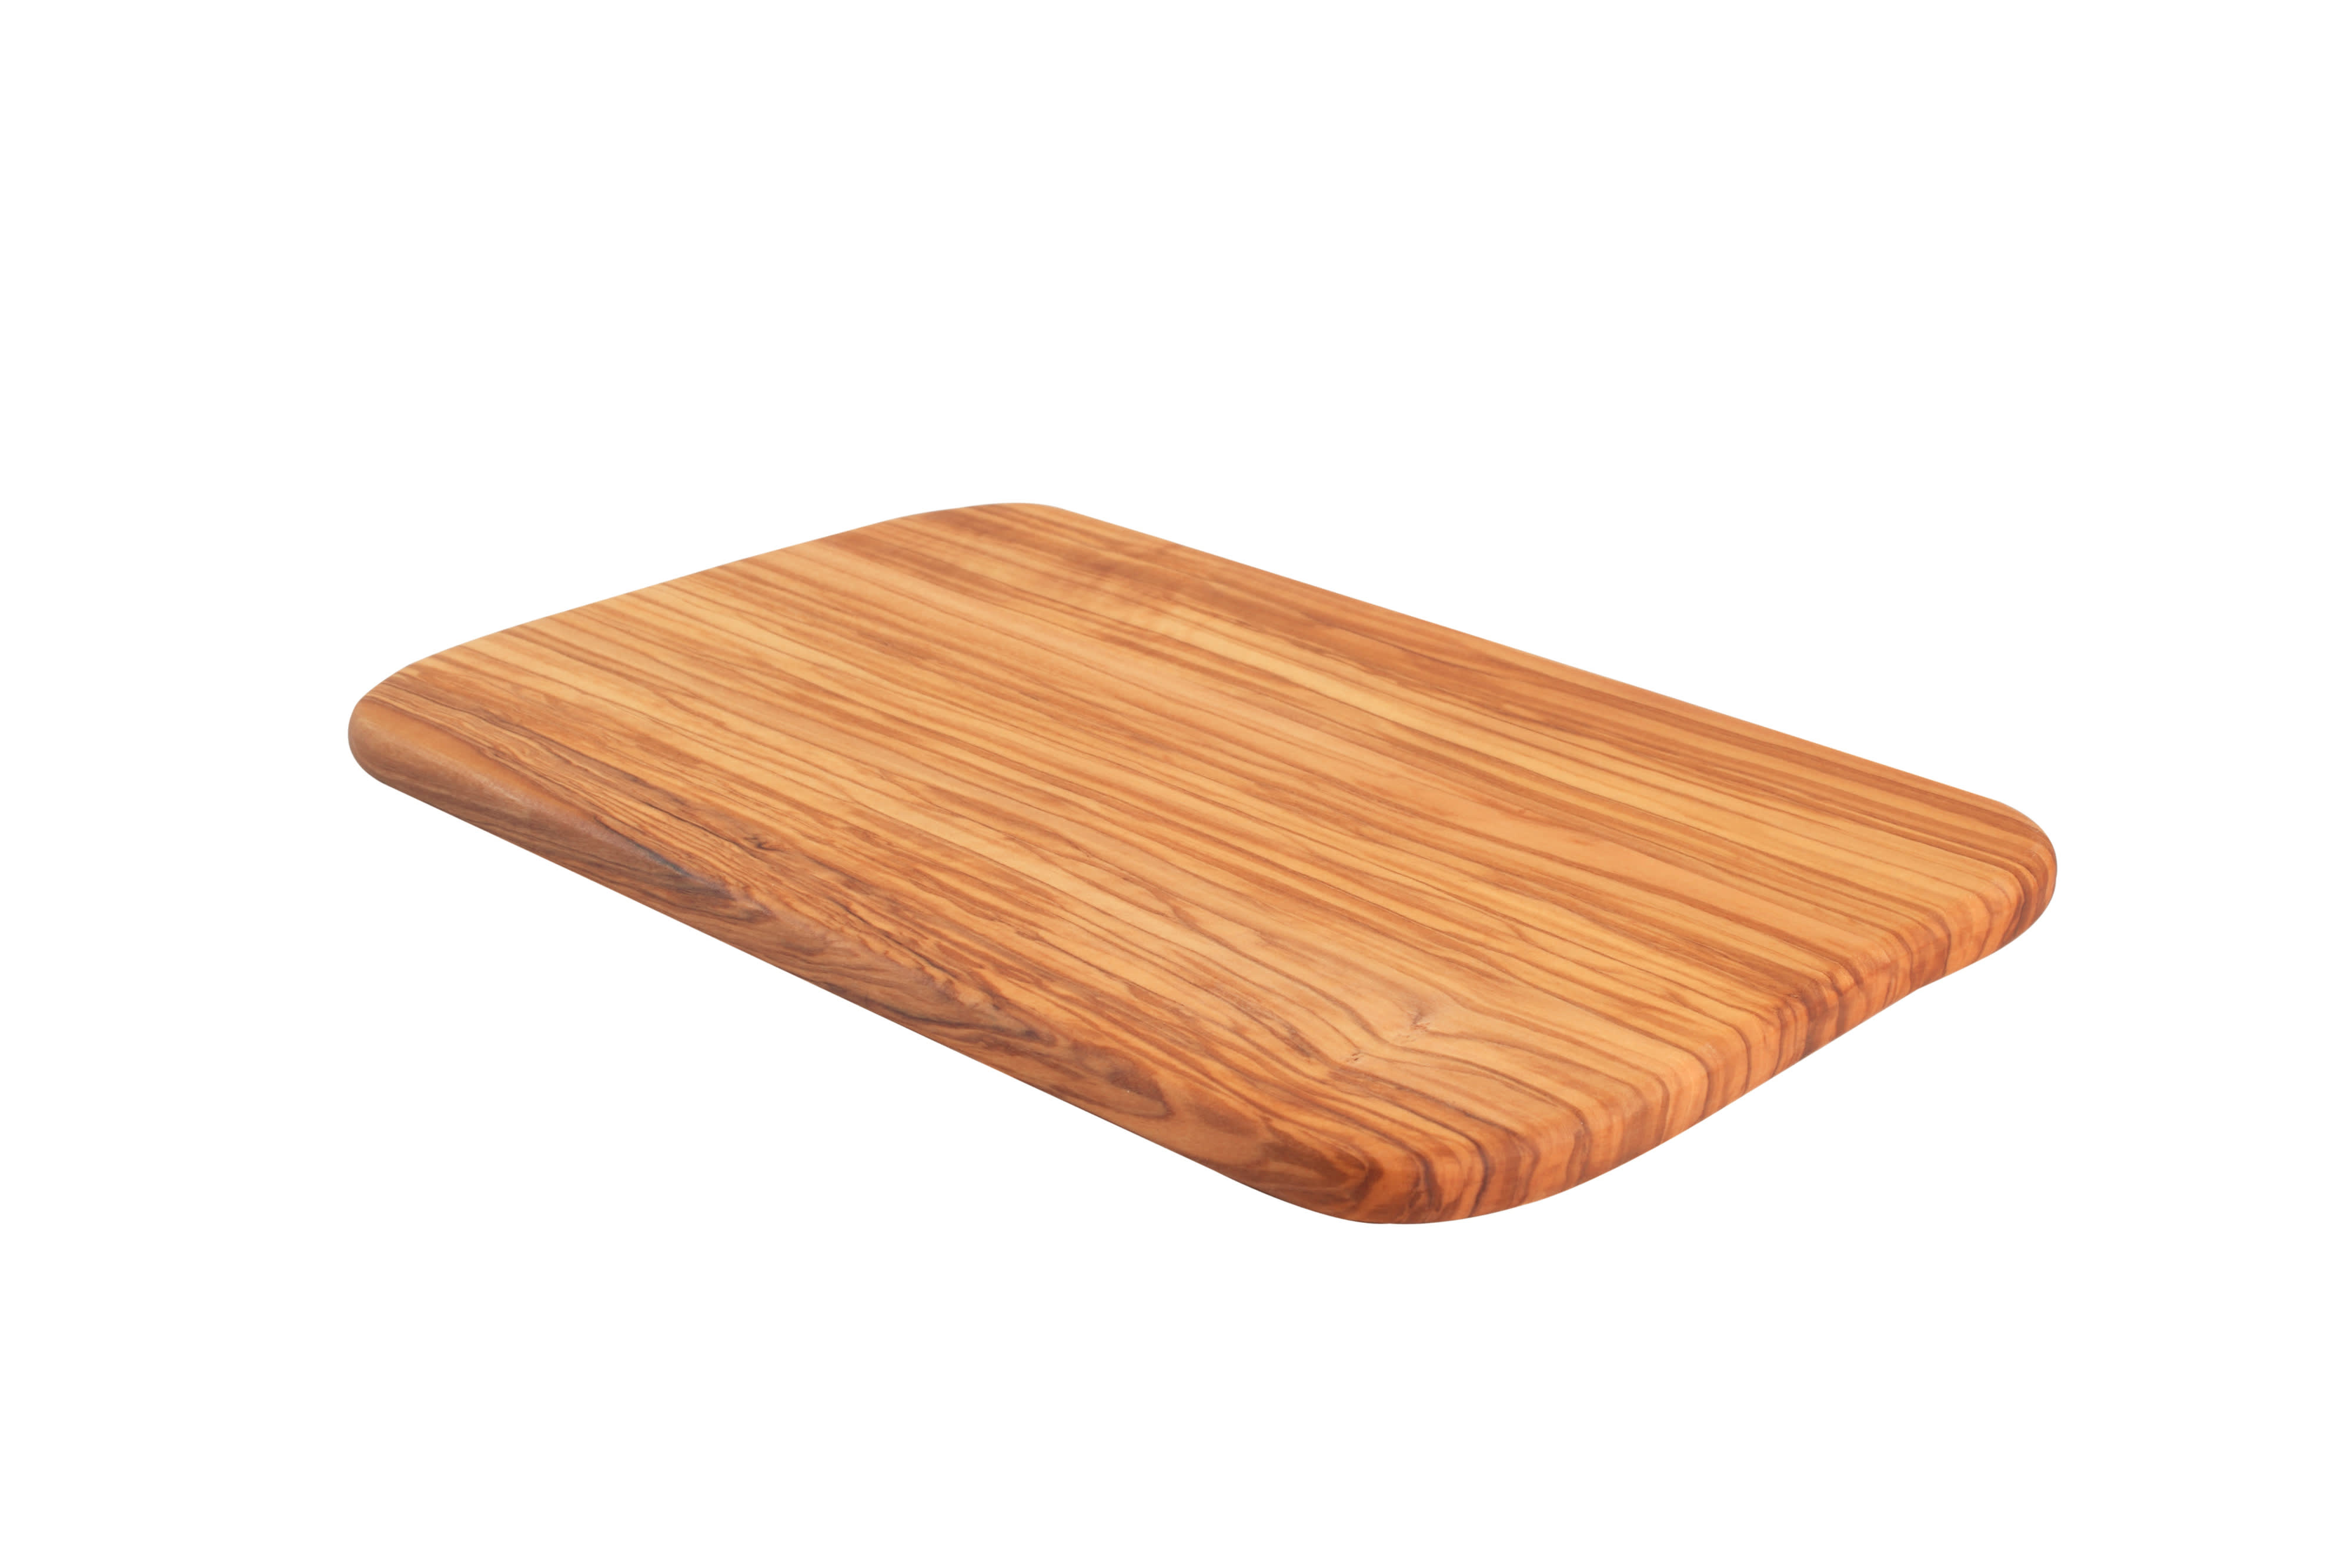 T&G Woodware Olive Wood Medium Chopping Board